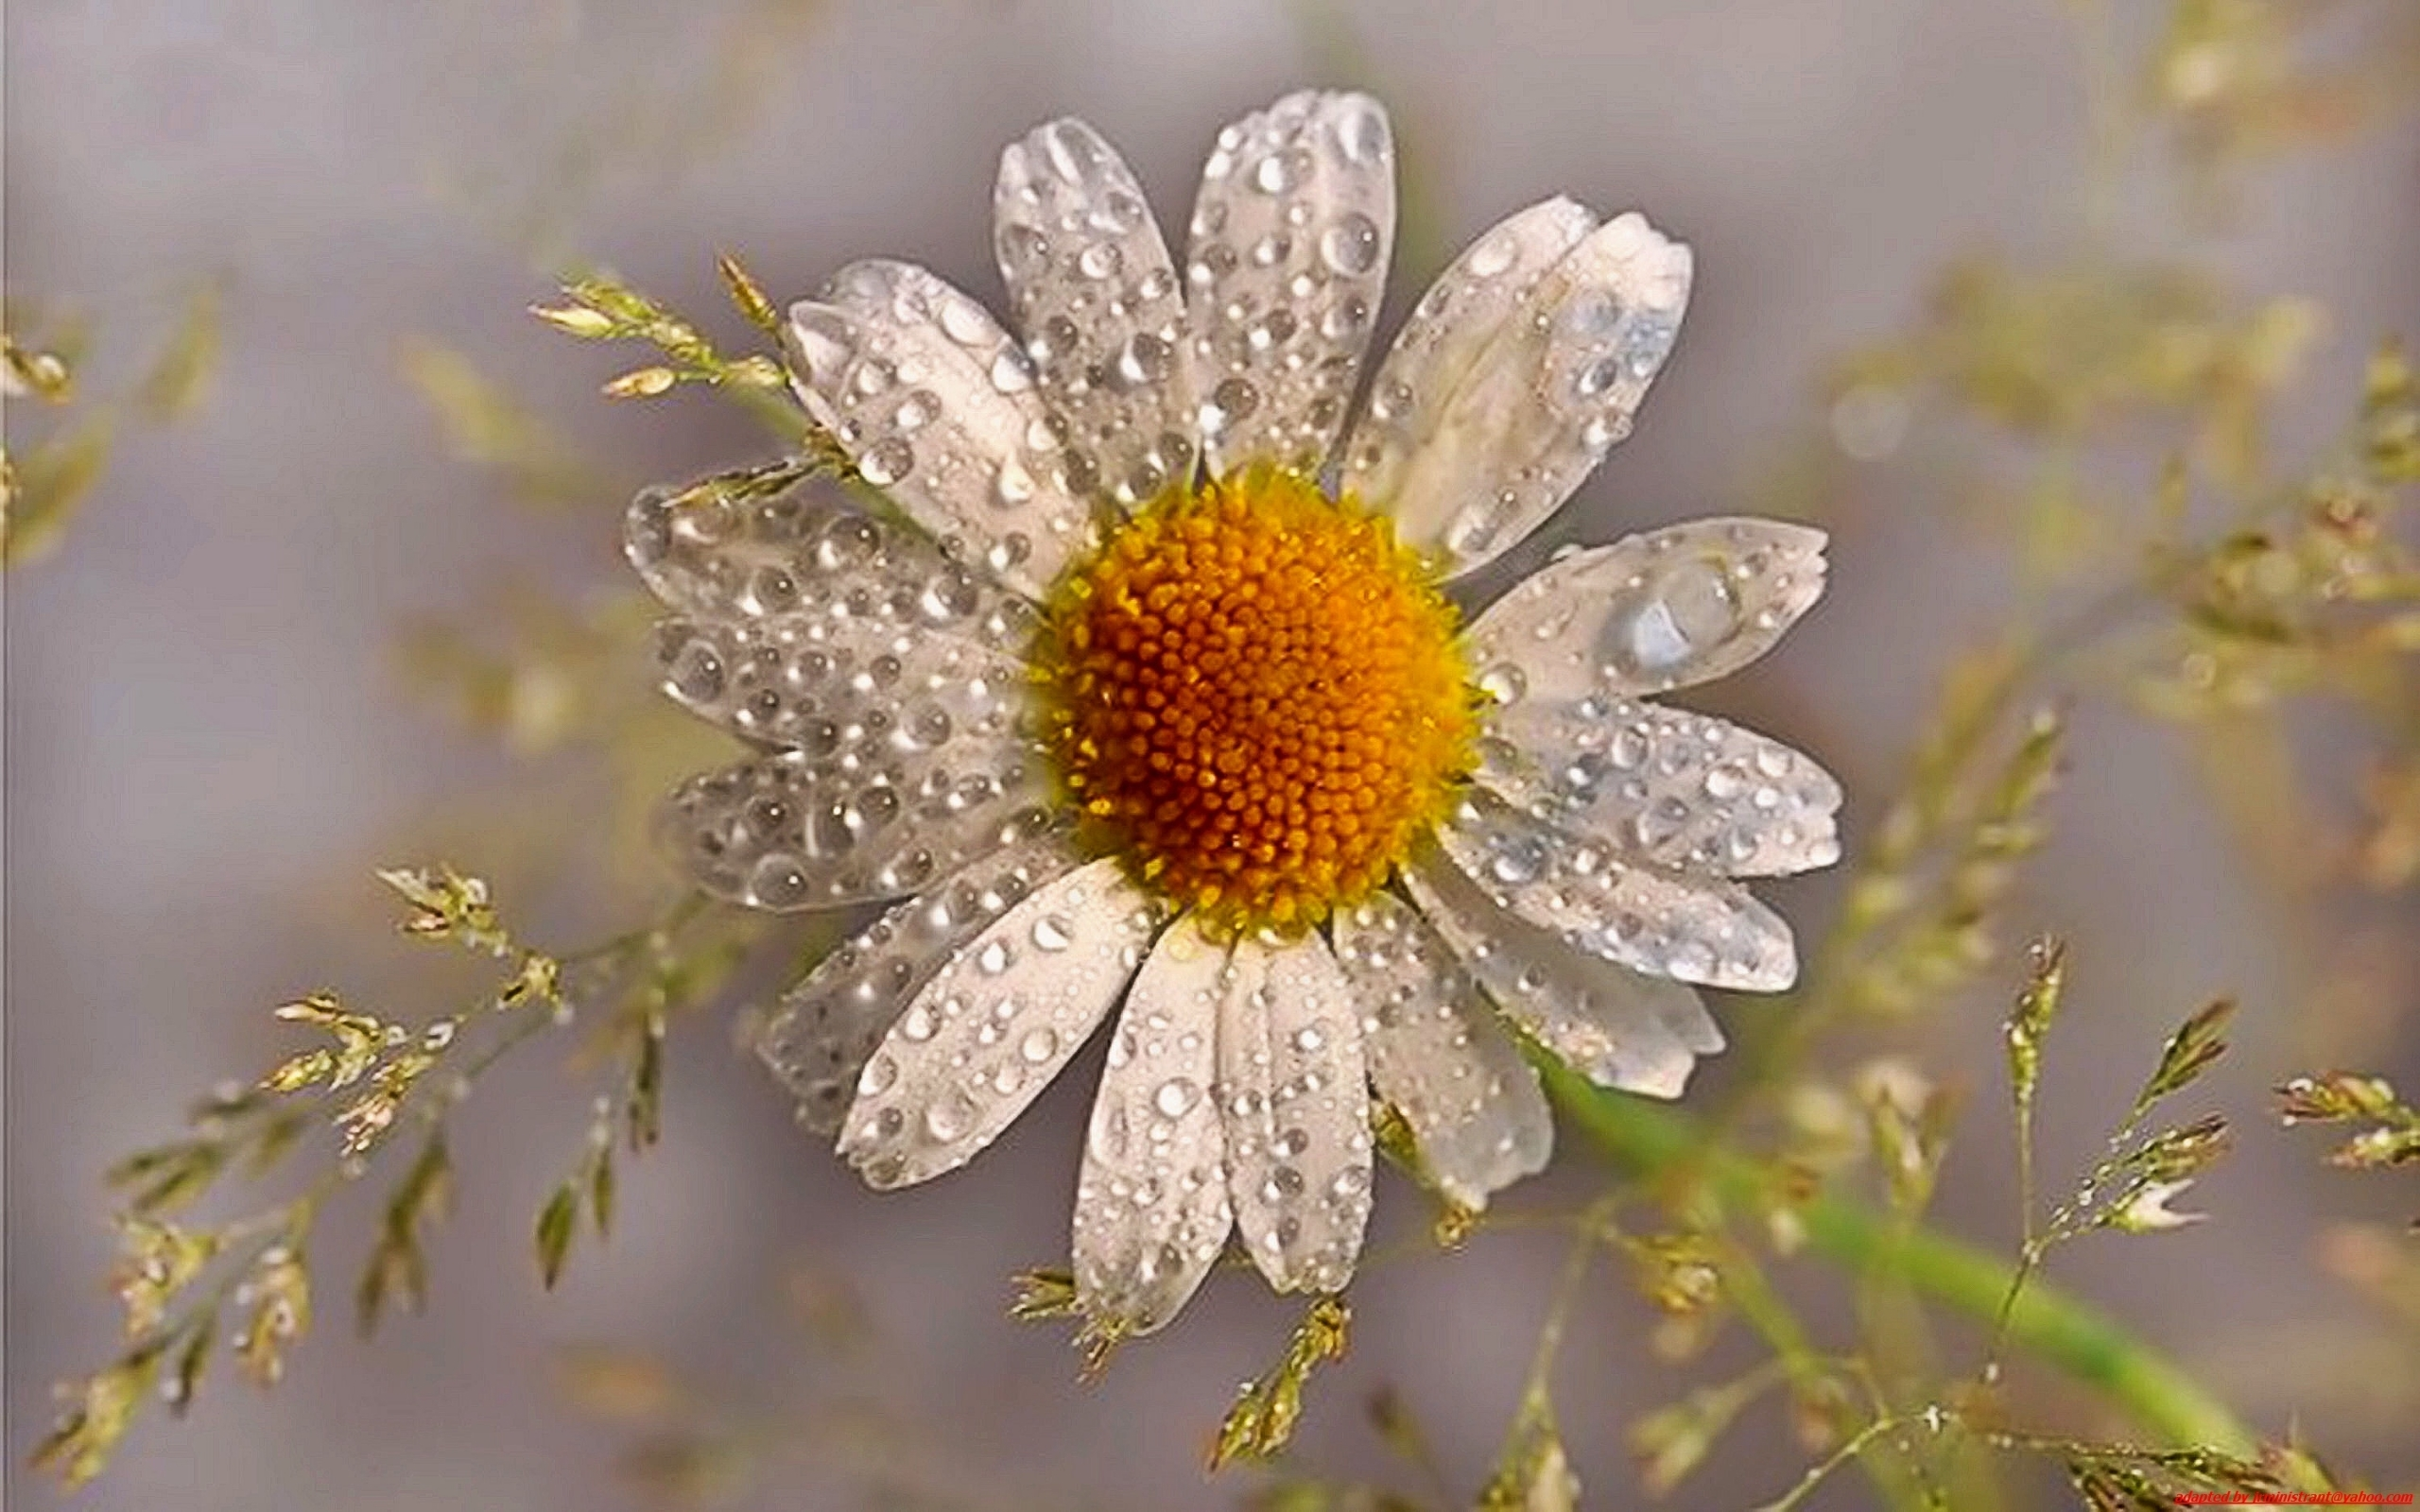 28359 download wallpaper Plants, Flowers, Camomile, Drops screensavers and pictures for free